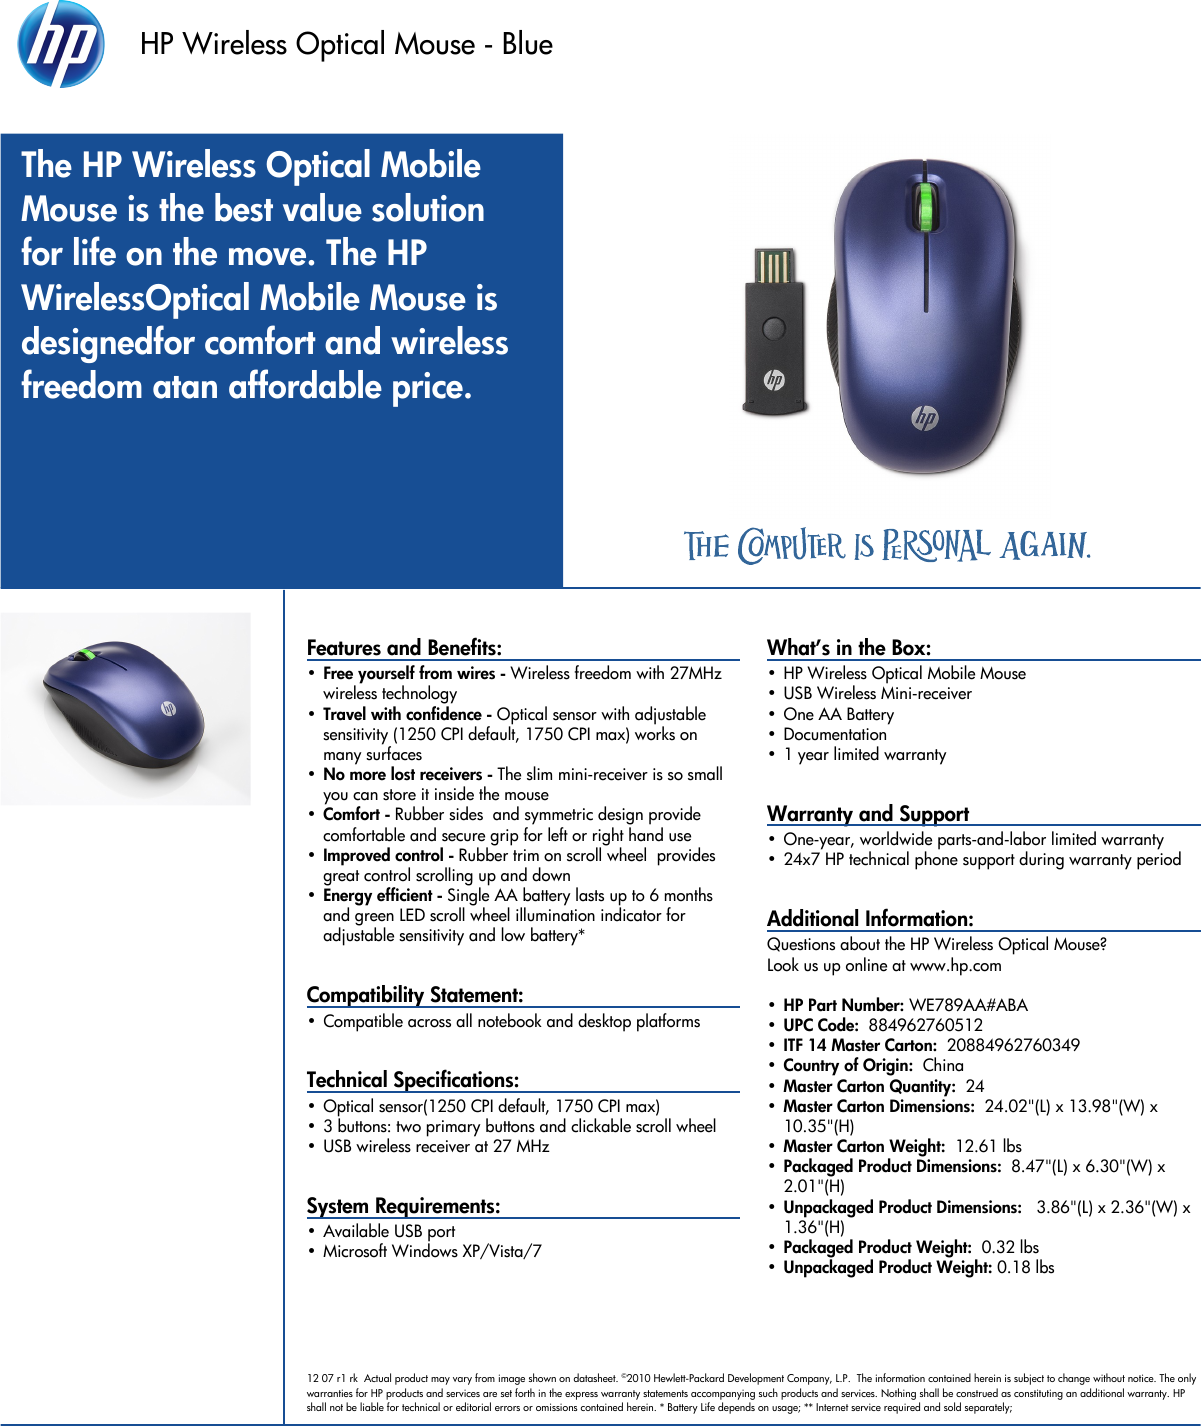 HP Pavilion Data Sheet Wireless Optical Mouse (Blue) Datasheet C02064083